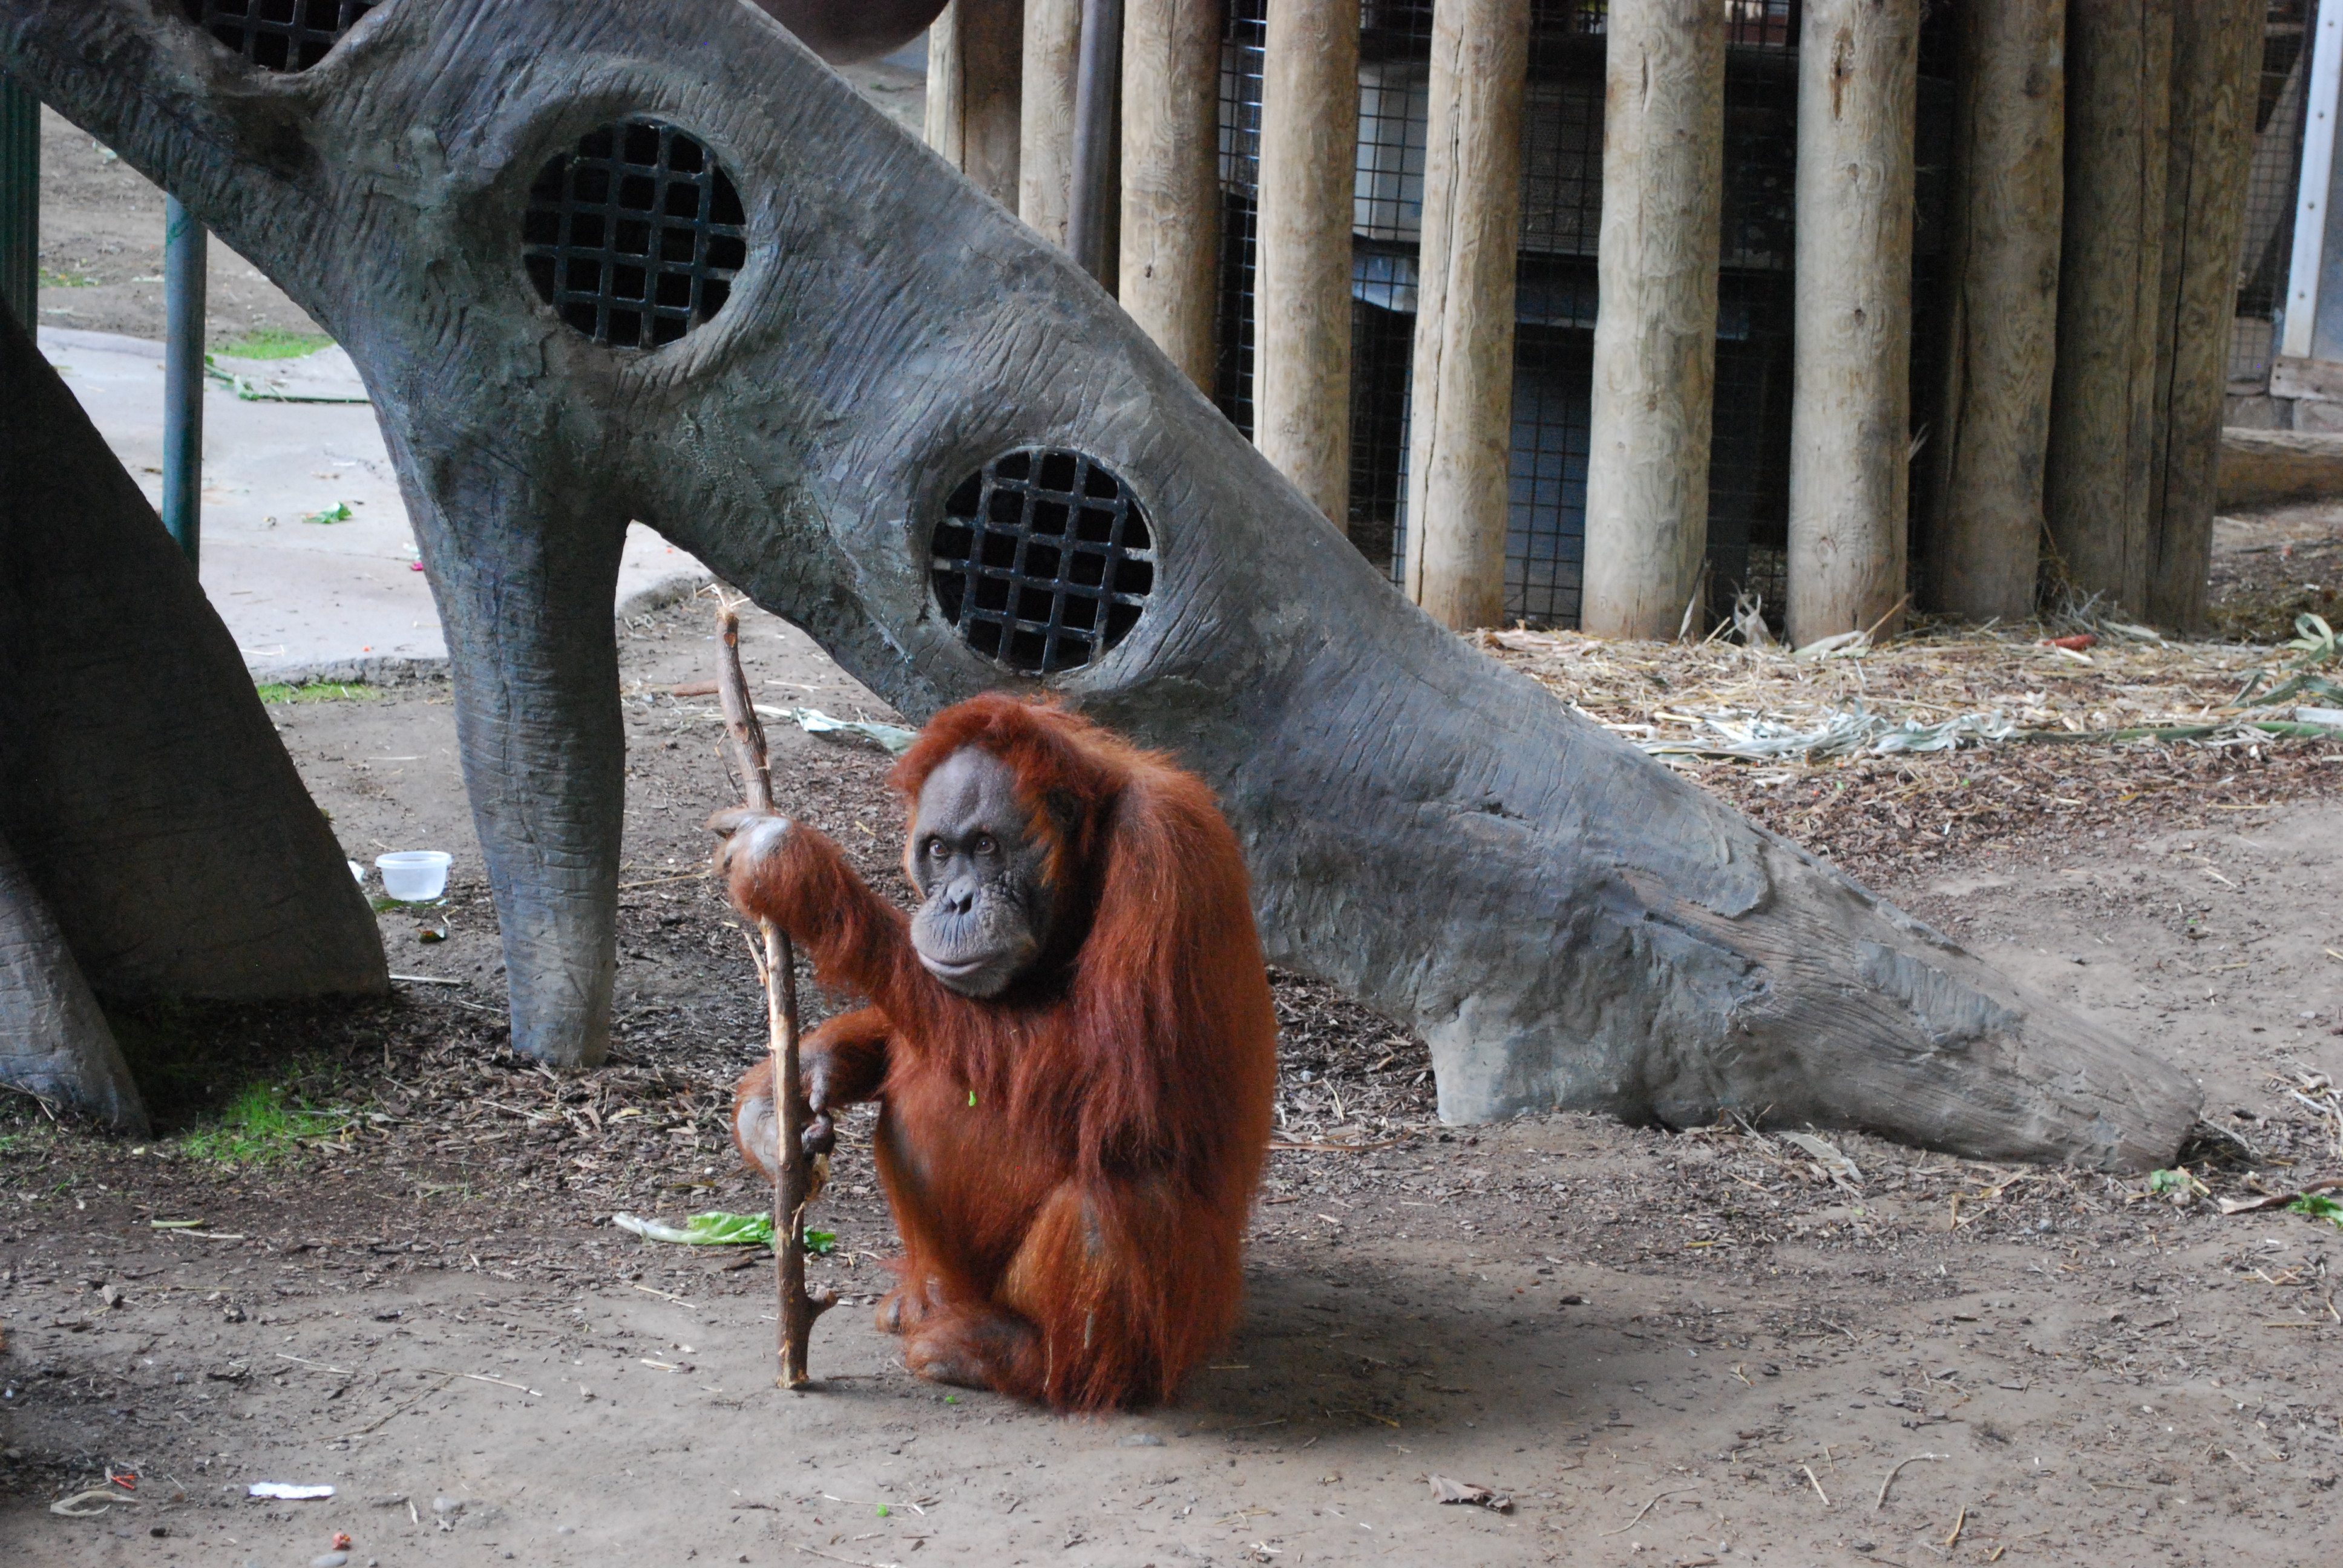 An Orangutan at the Toronto Zoo.